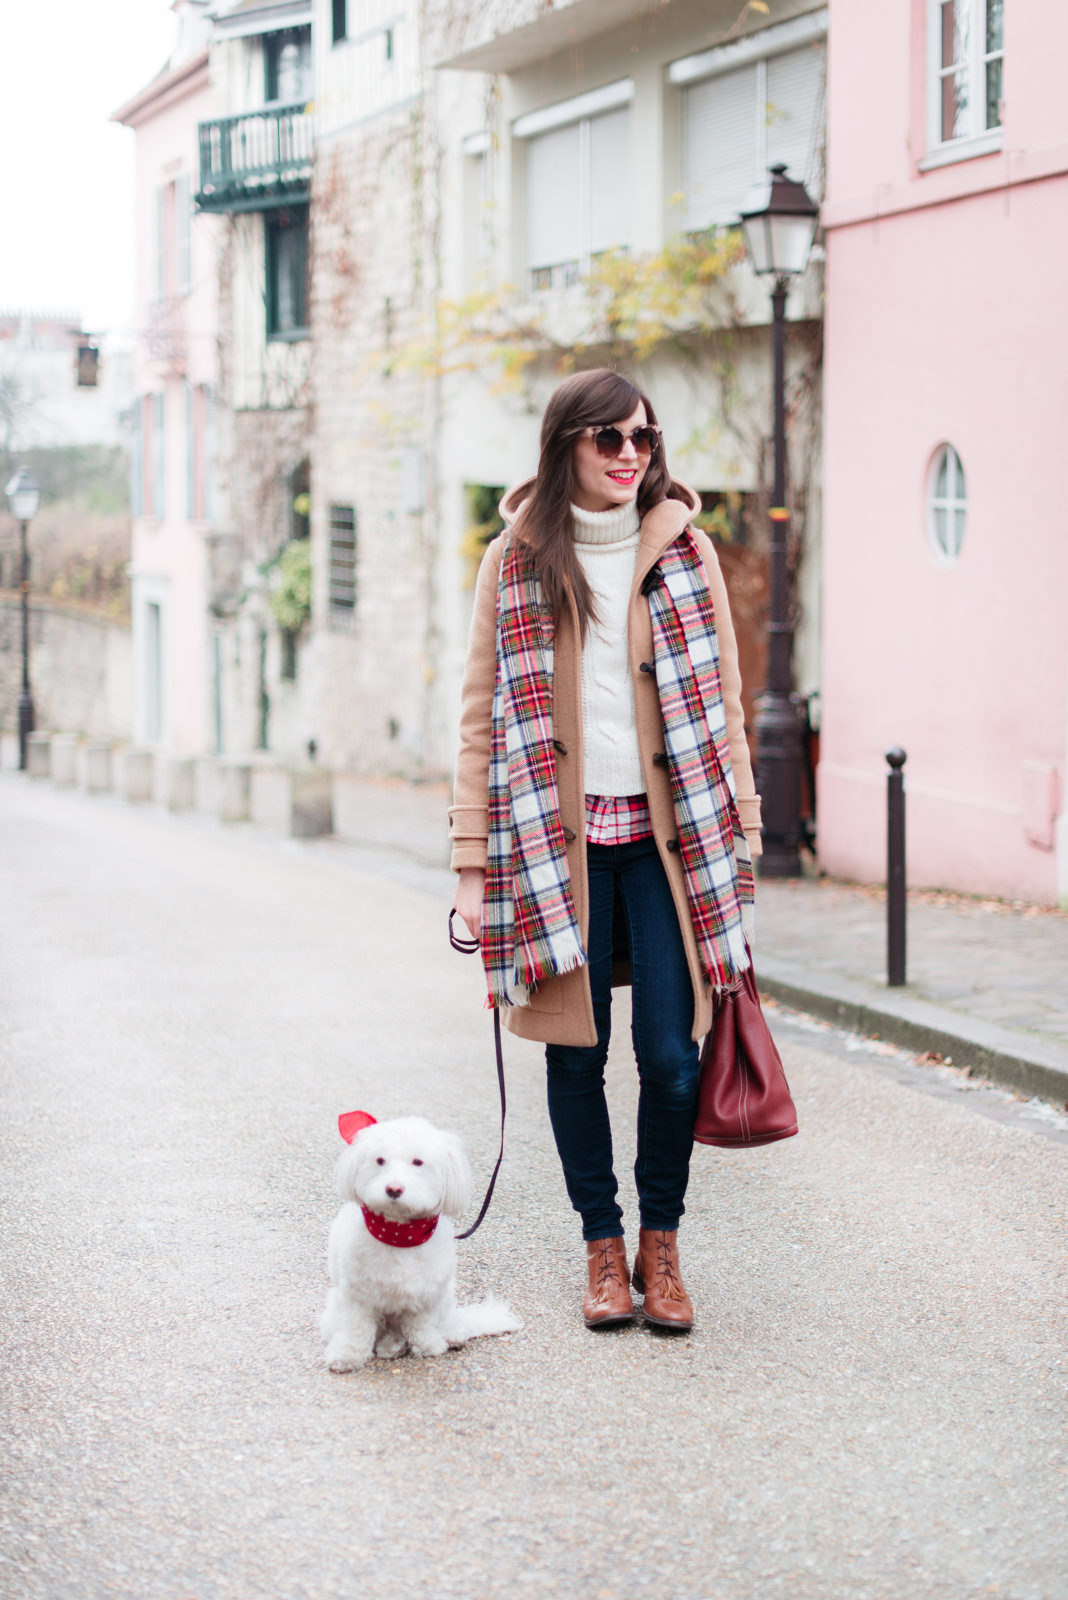 Blog-Mode-And-The-City-Looks-La-Maison-Rose-3